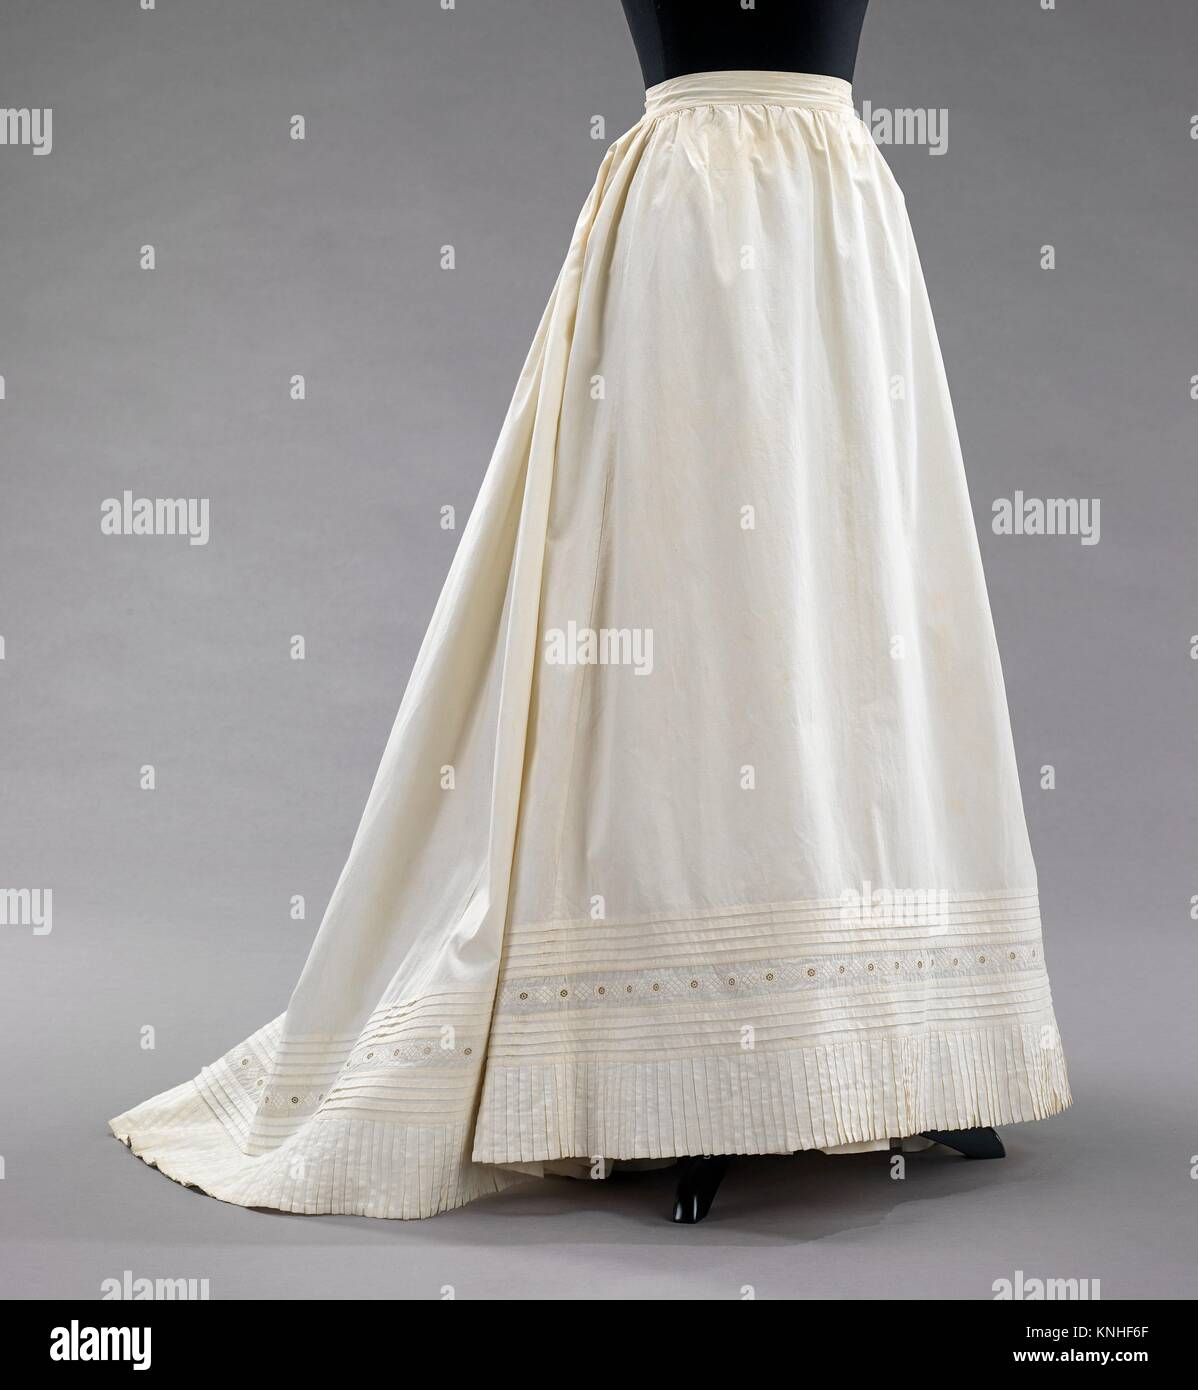 Date 1890; Culture American; Medium cotton; Credit Line Brooklyn Museum Costume Collection at The Metropolitan Museum of Art Gift of & Petticoat. Date: 1890; Culture: American; Medium: cotton; Credit ...